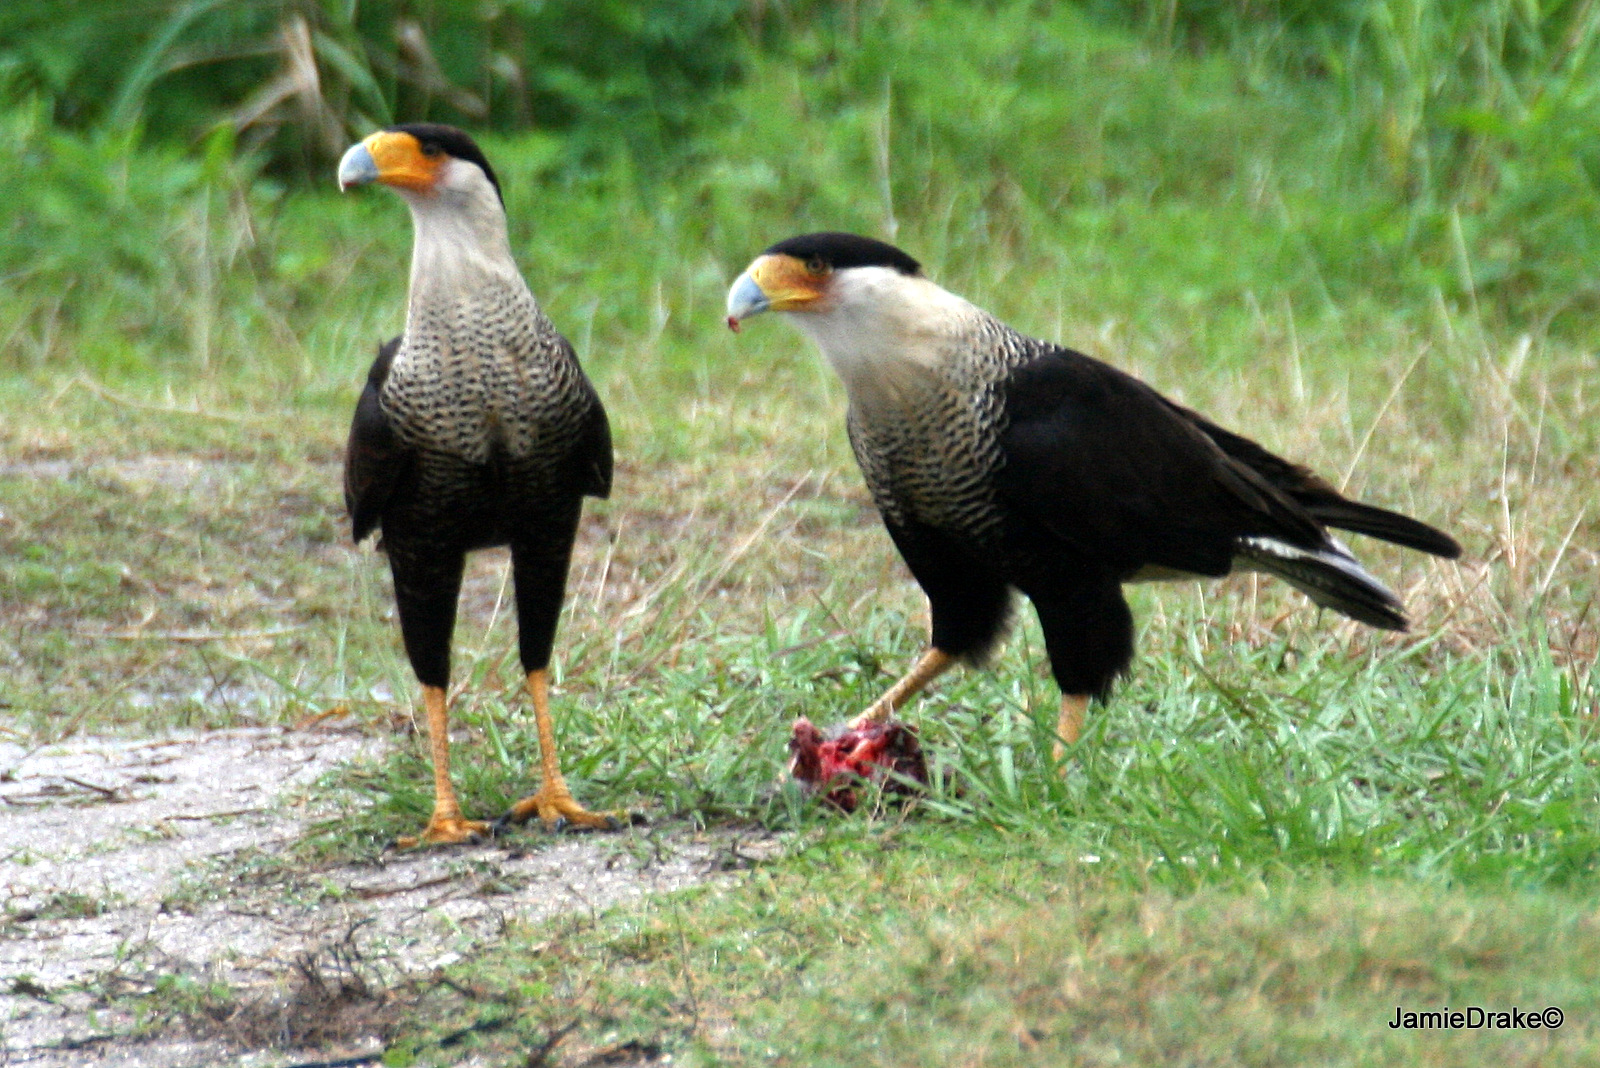 Mated pair of caracara will stay together for life although they